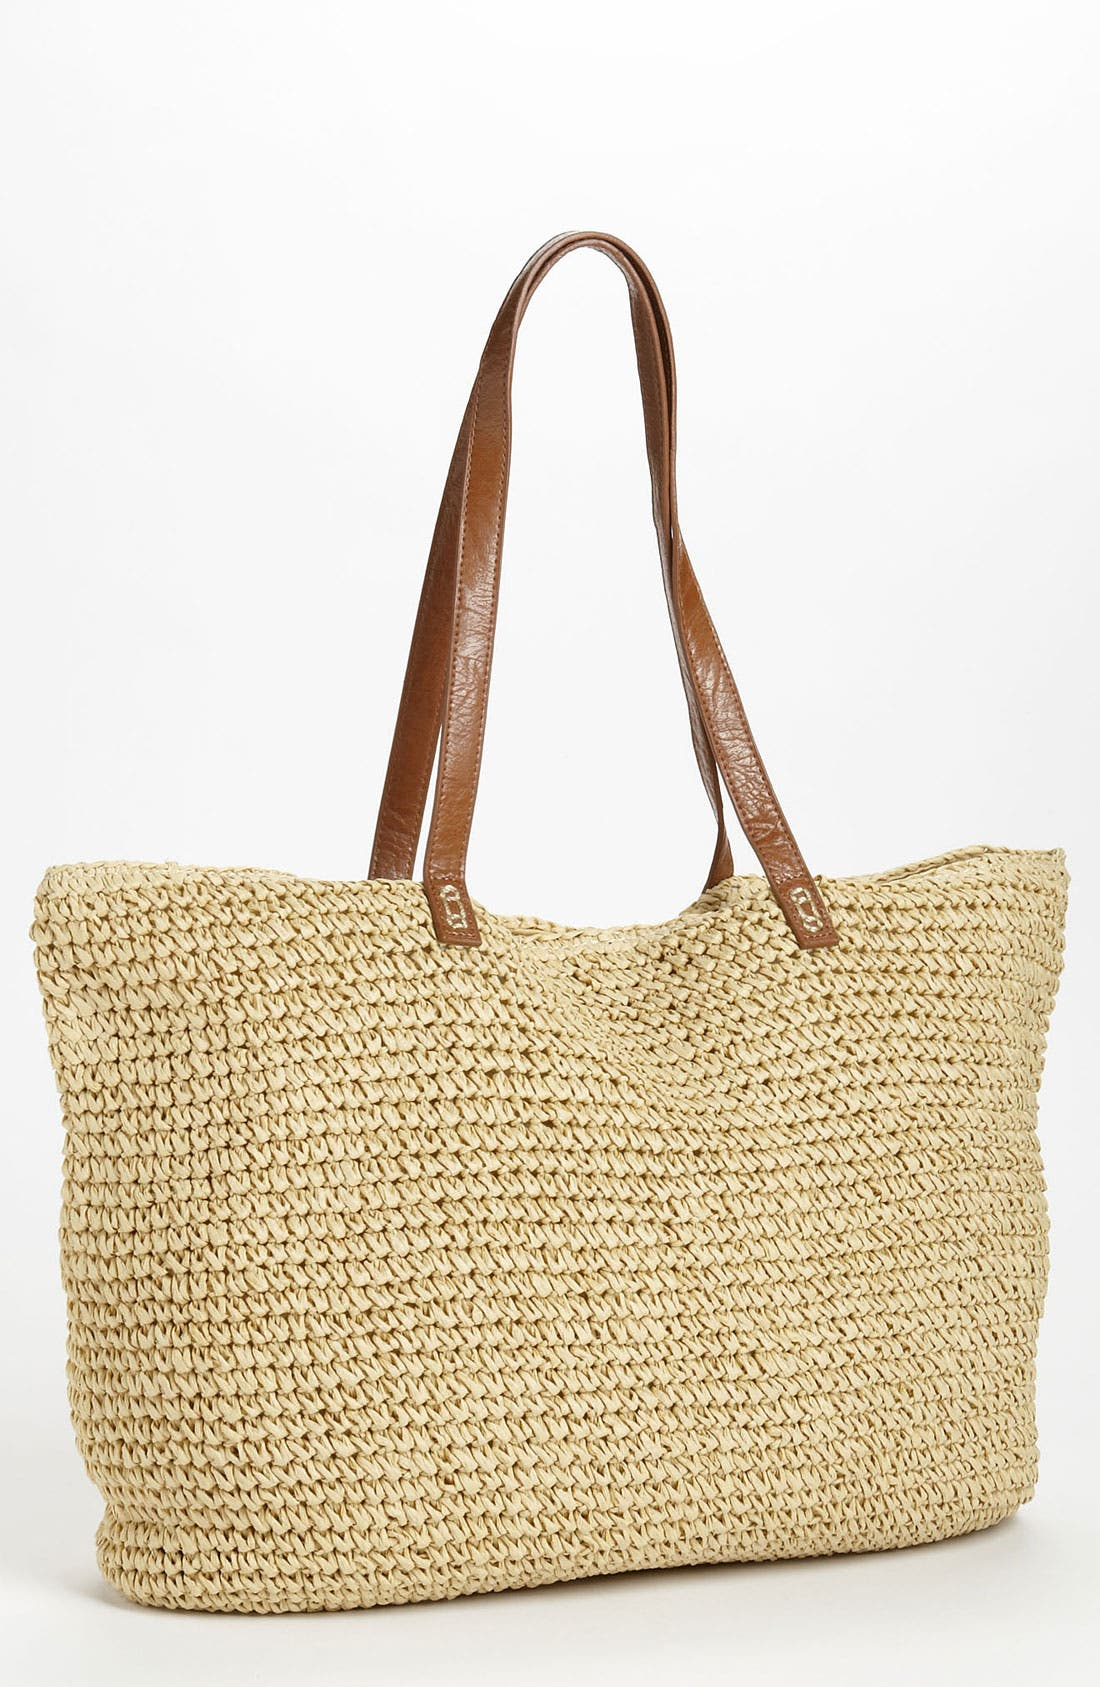 Main Image - Straw Studios 'East West' Tote